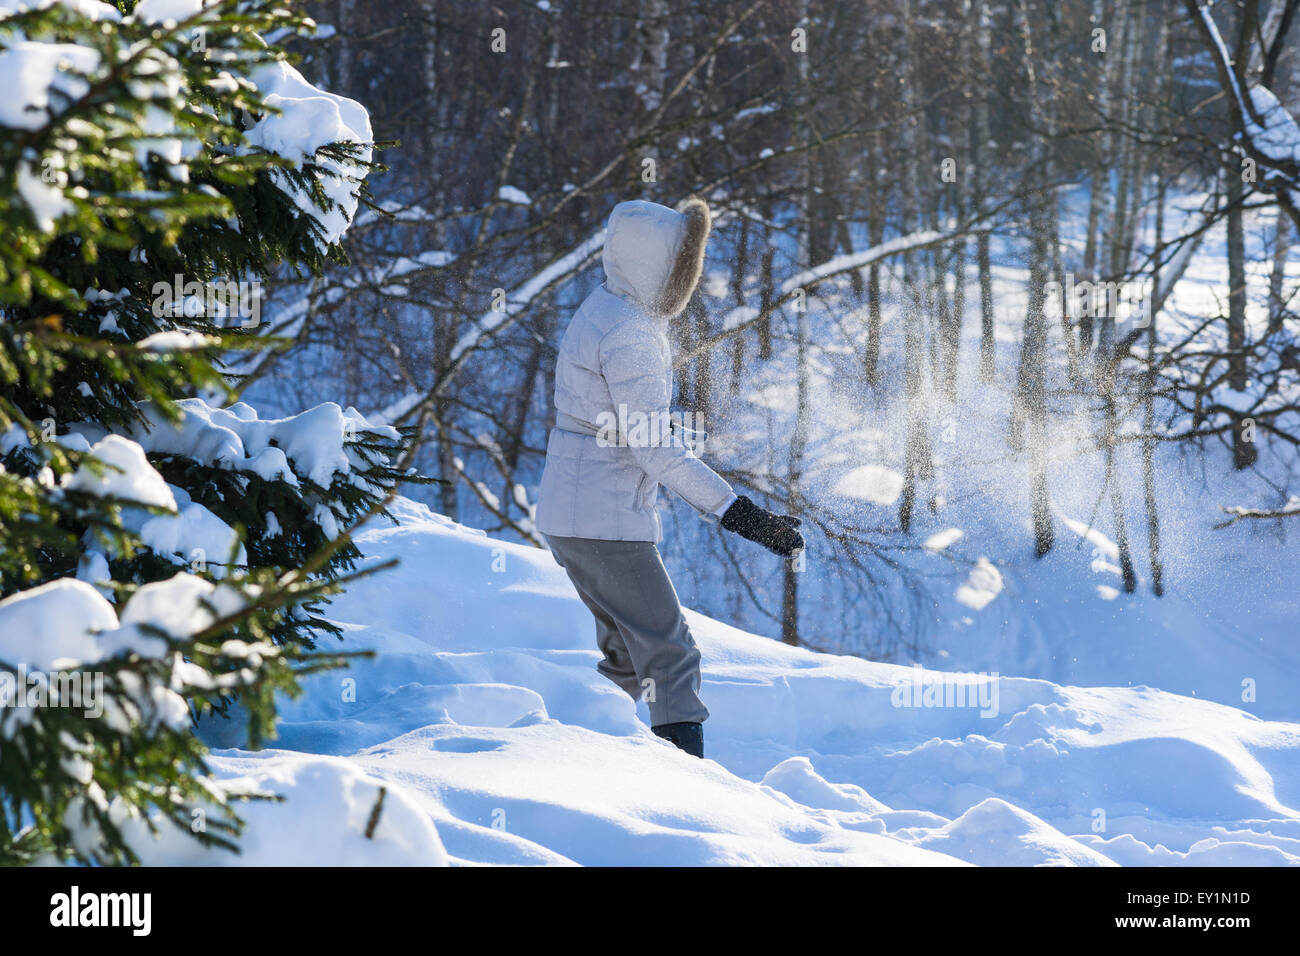 Unidentified, unrecognizable woman plays snowball fight in the winter forest. Snow powder in the air - Stock Image